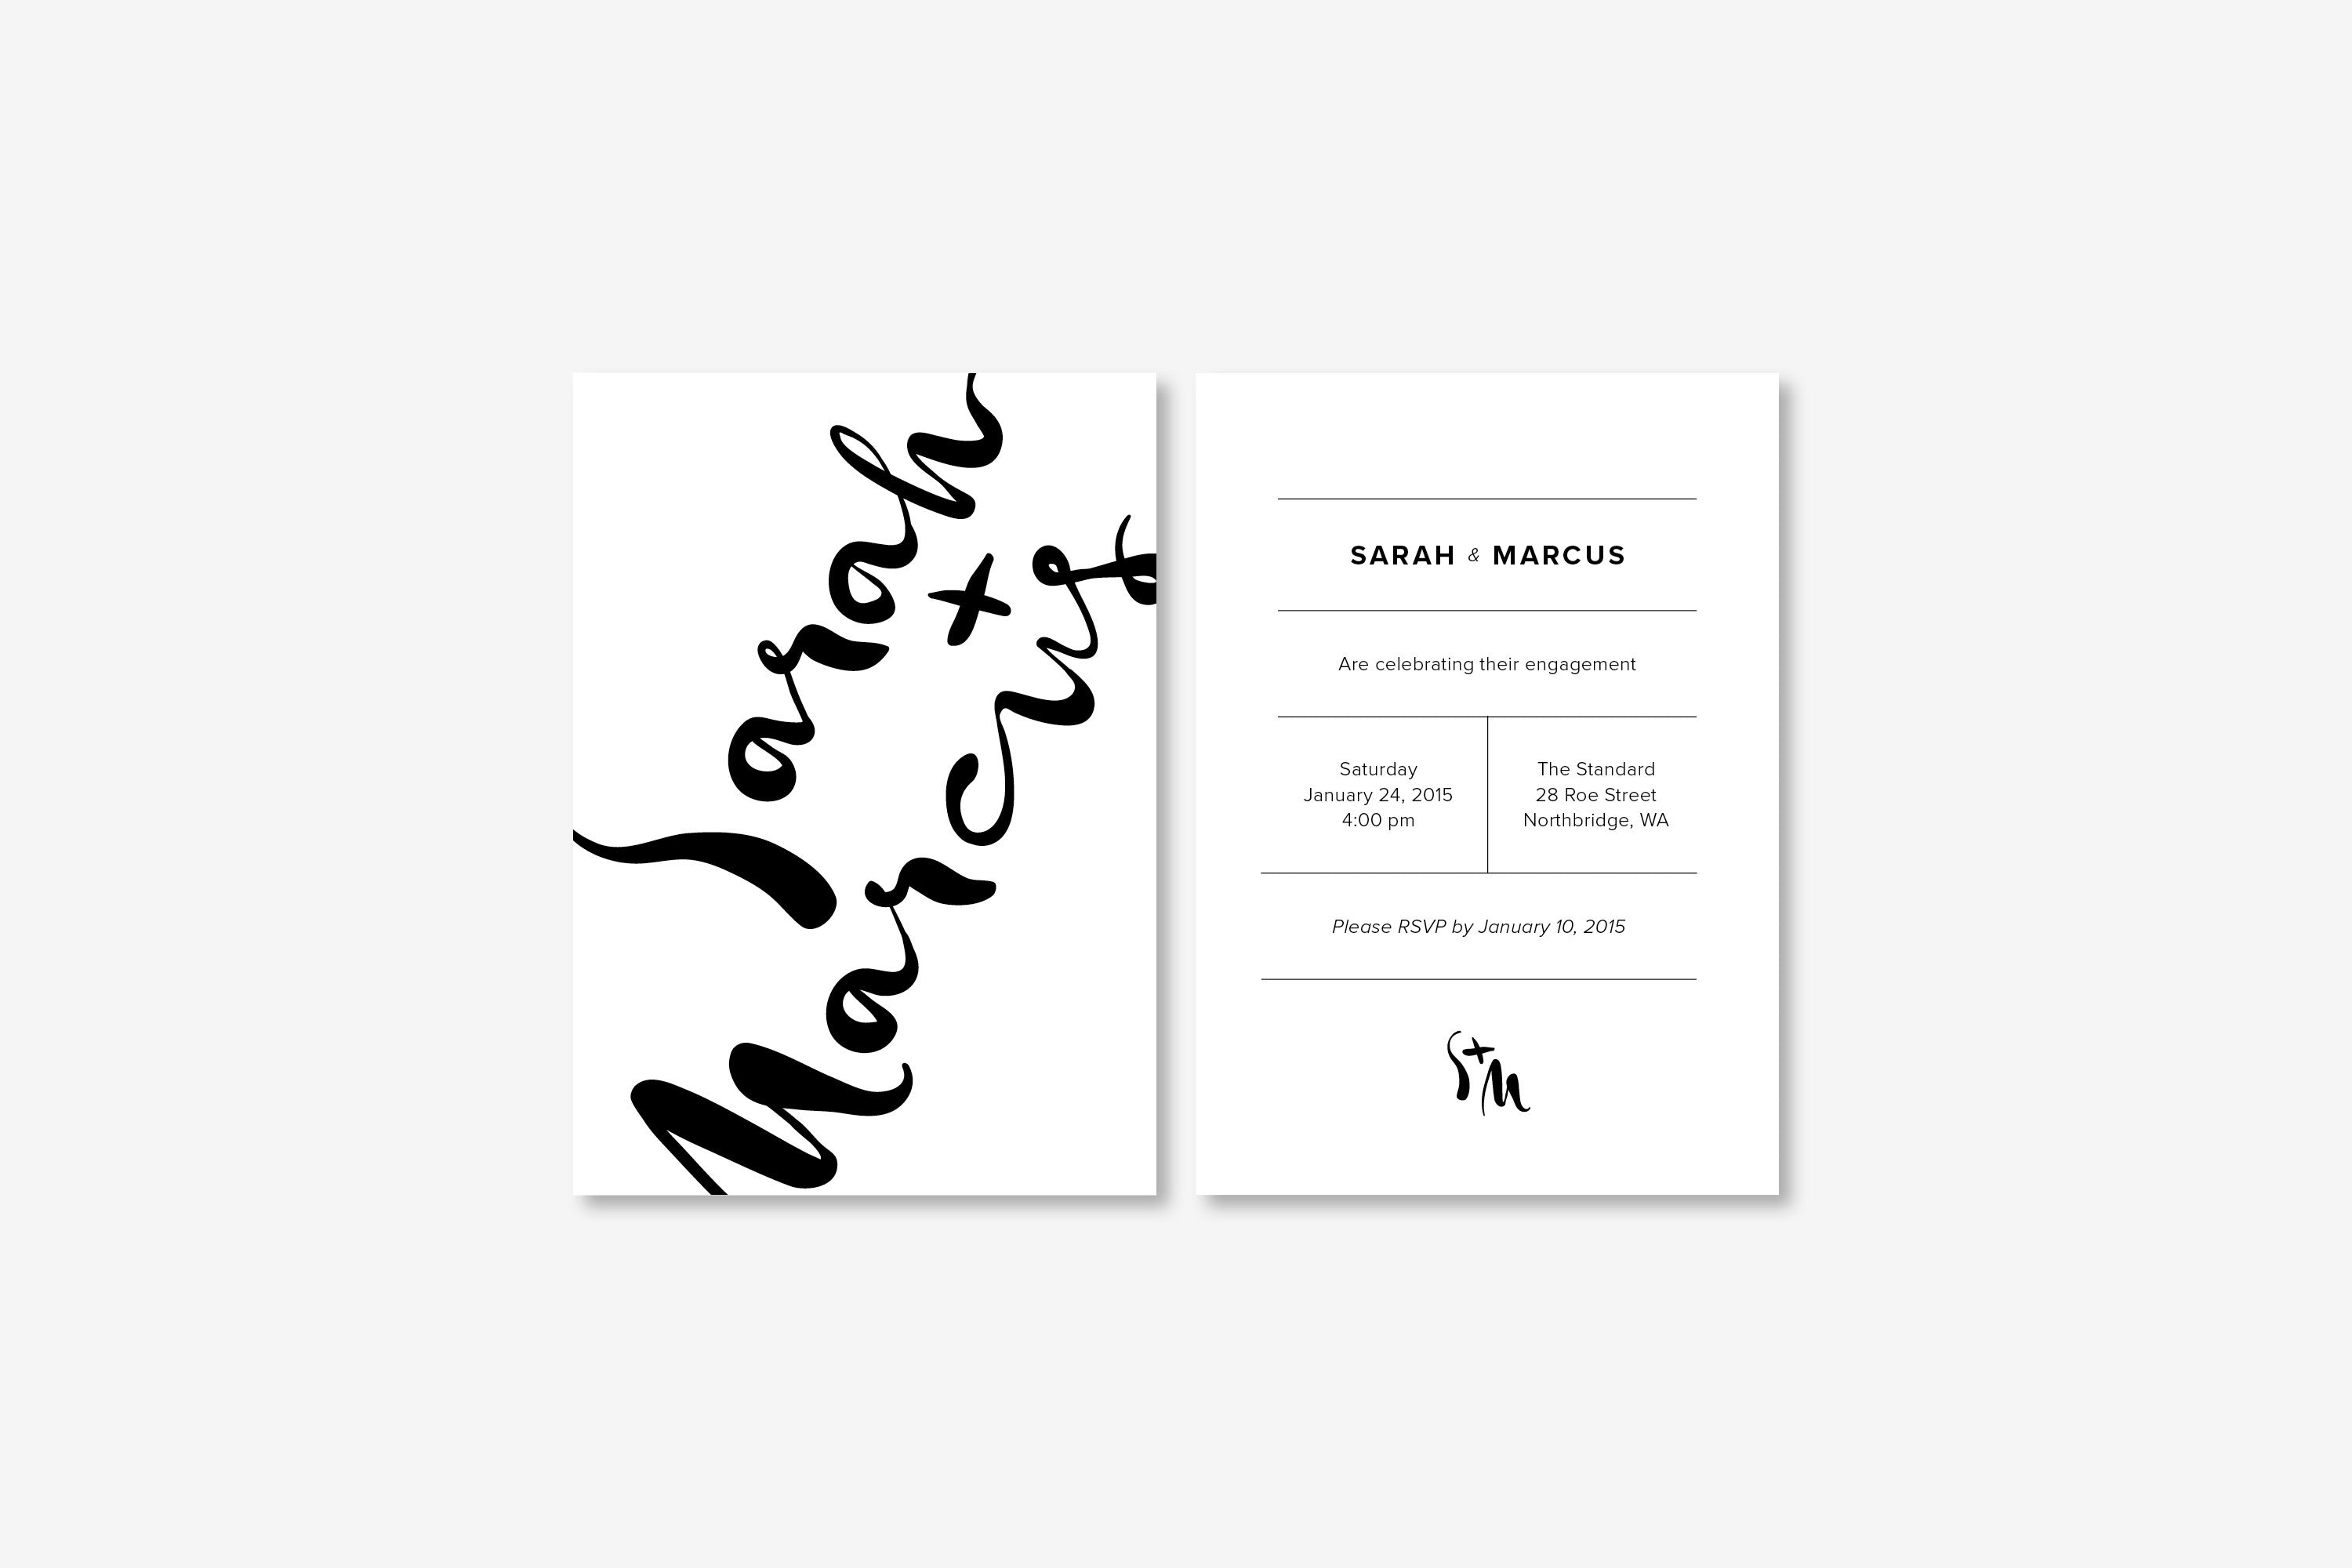 Monochrome Minimalist | Invitation Engagement